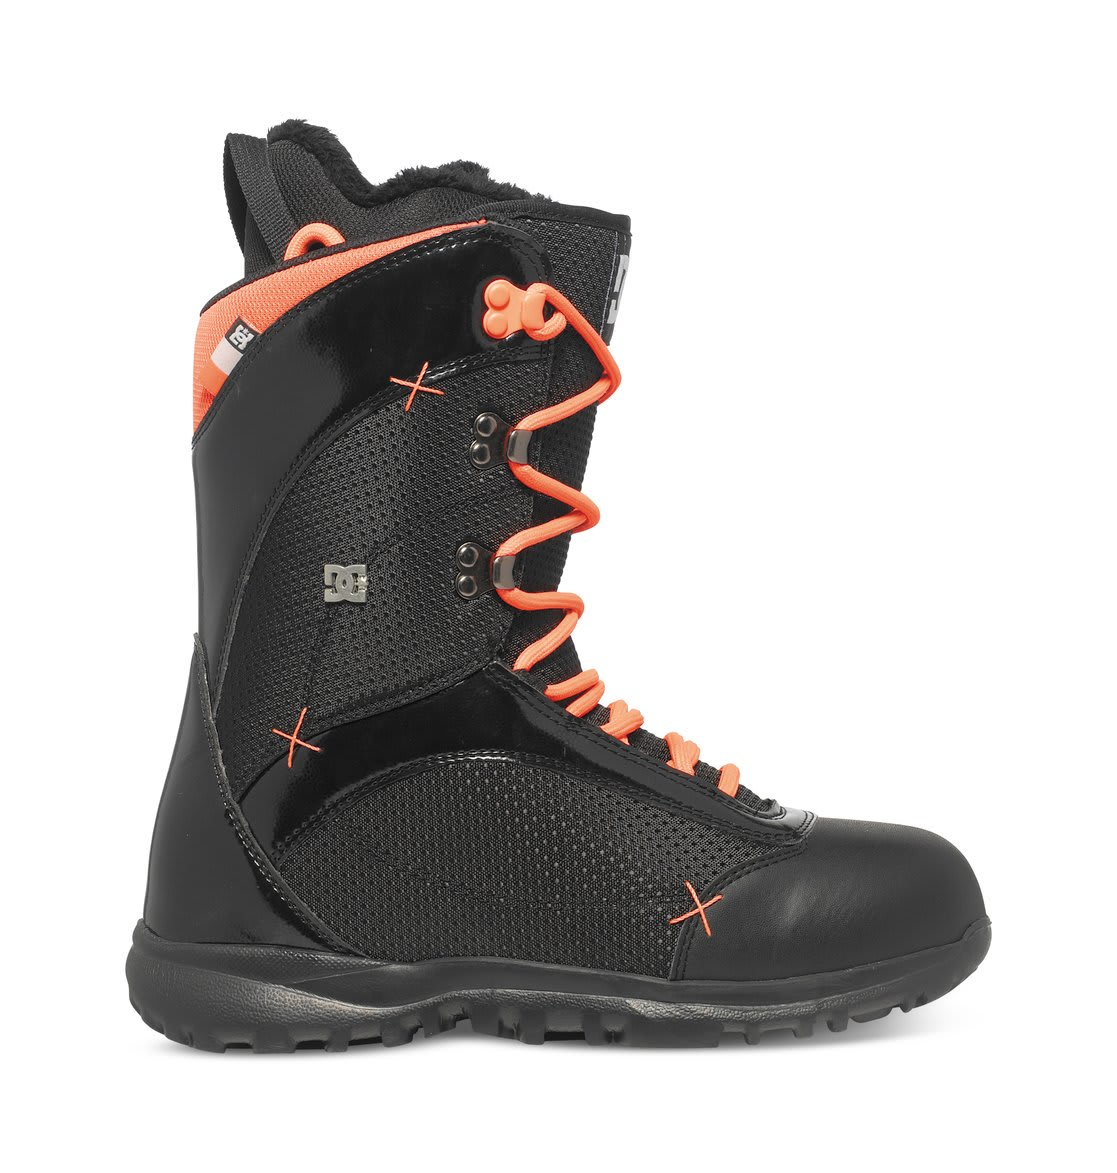 on sale dc karma snowboard boots womens up to 40